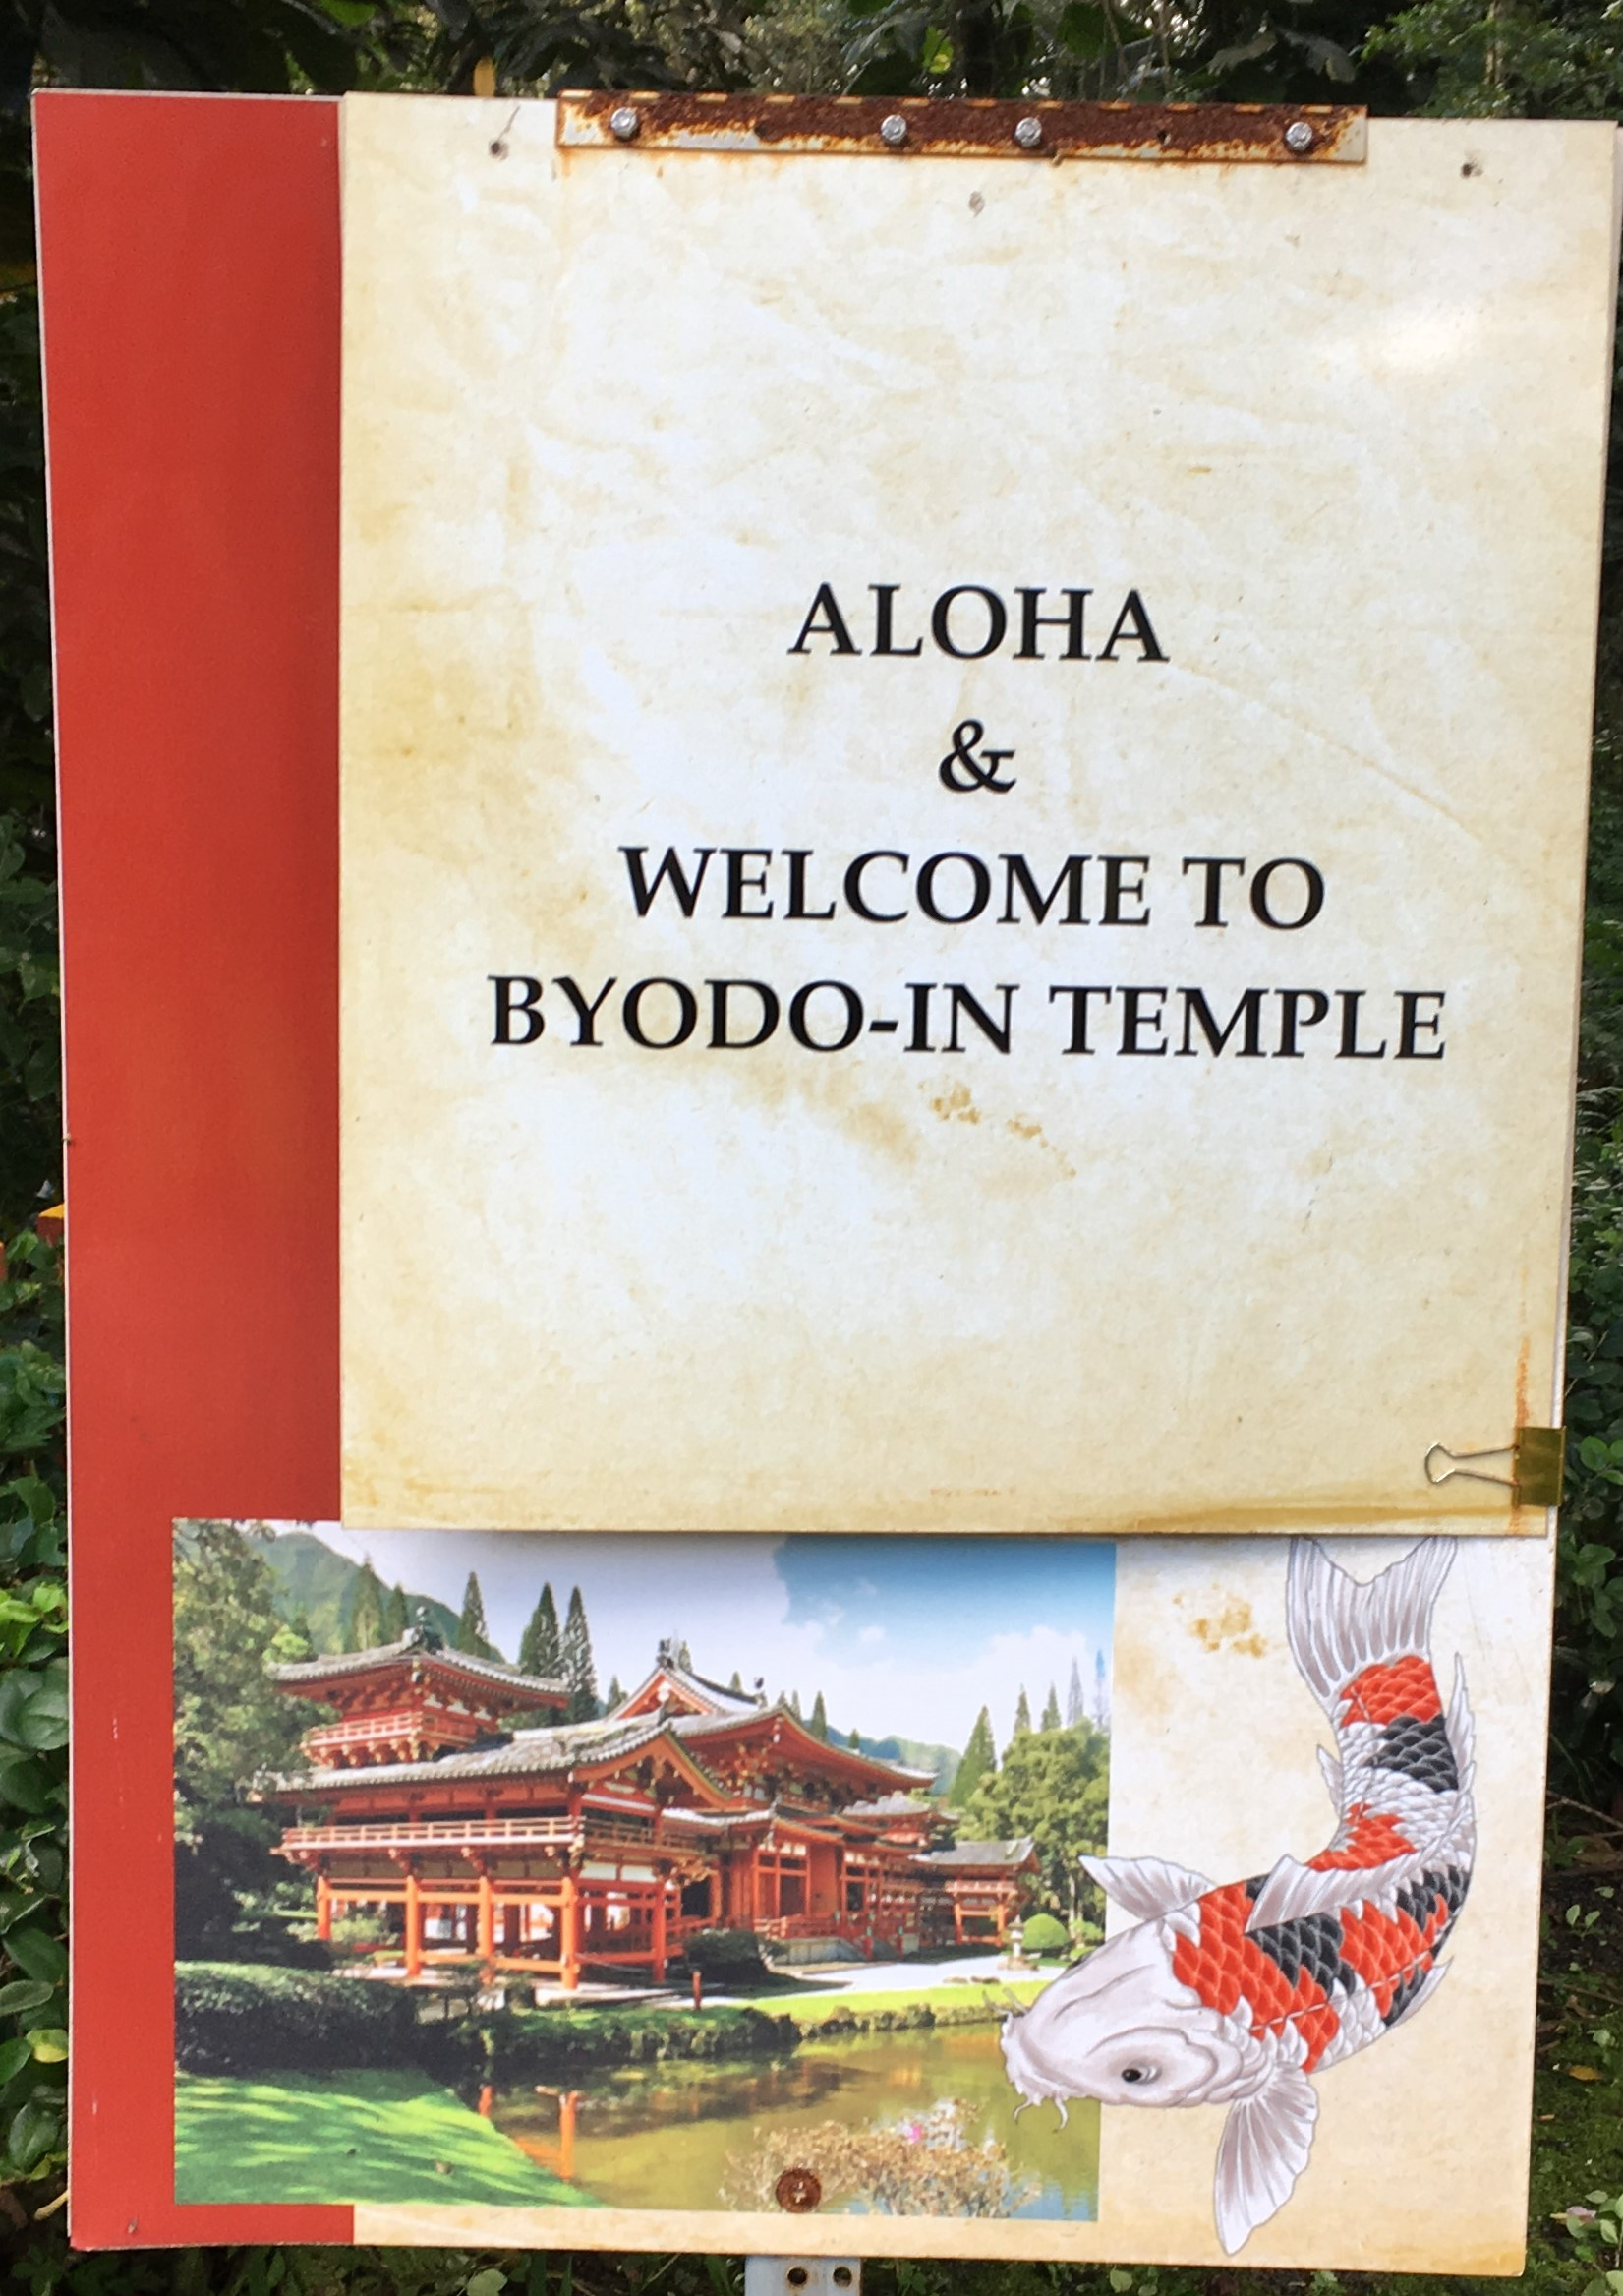 welcome sign for Hawaii's byodo-in temple